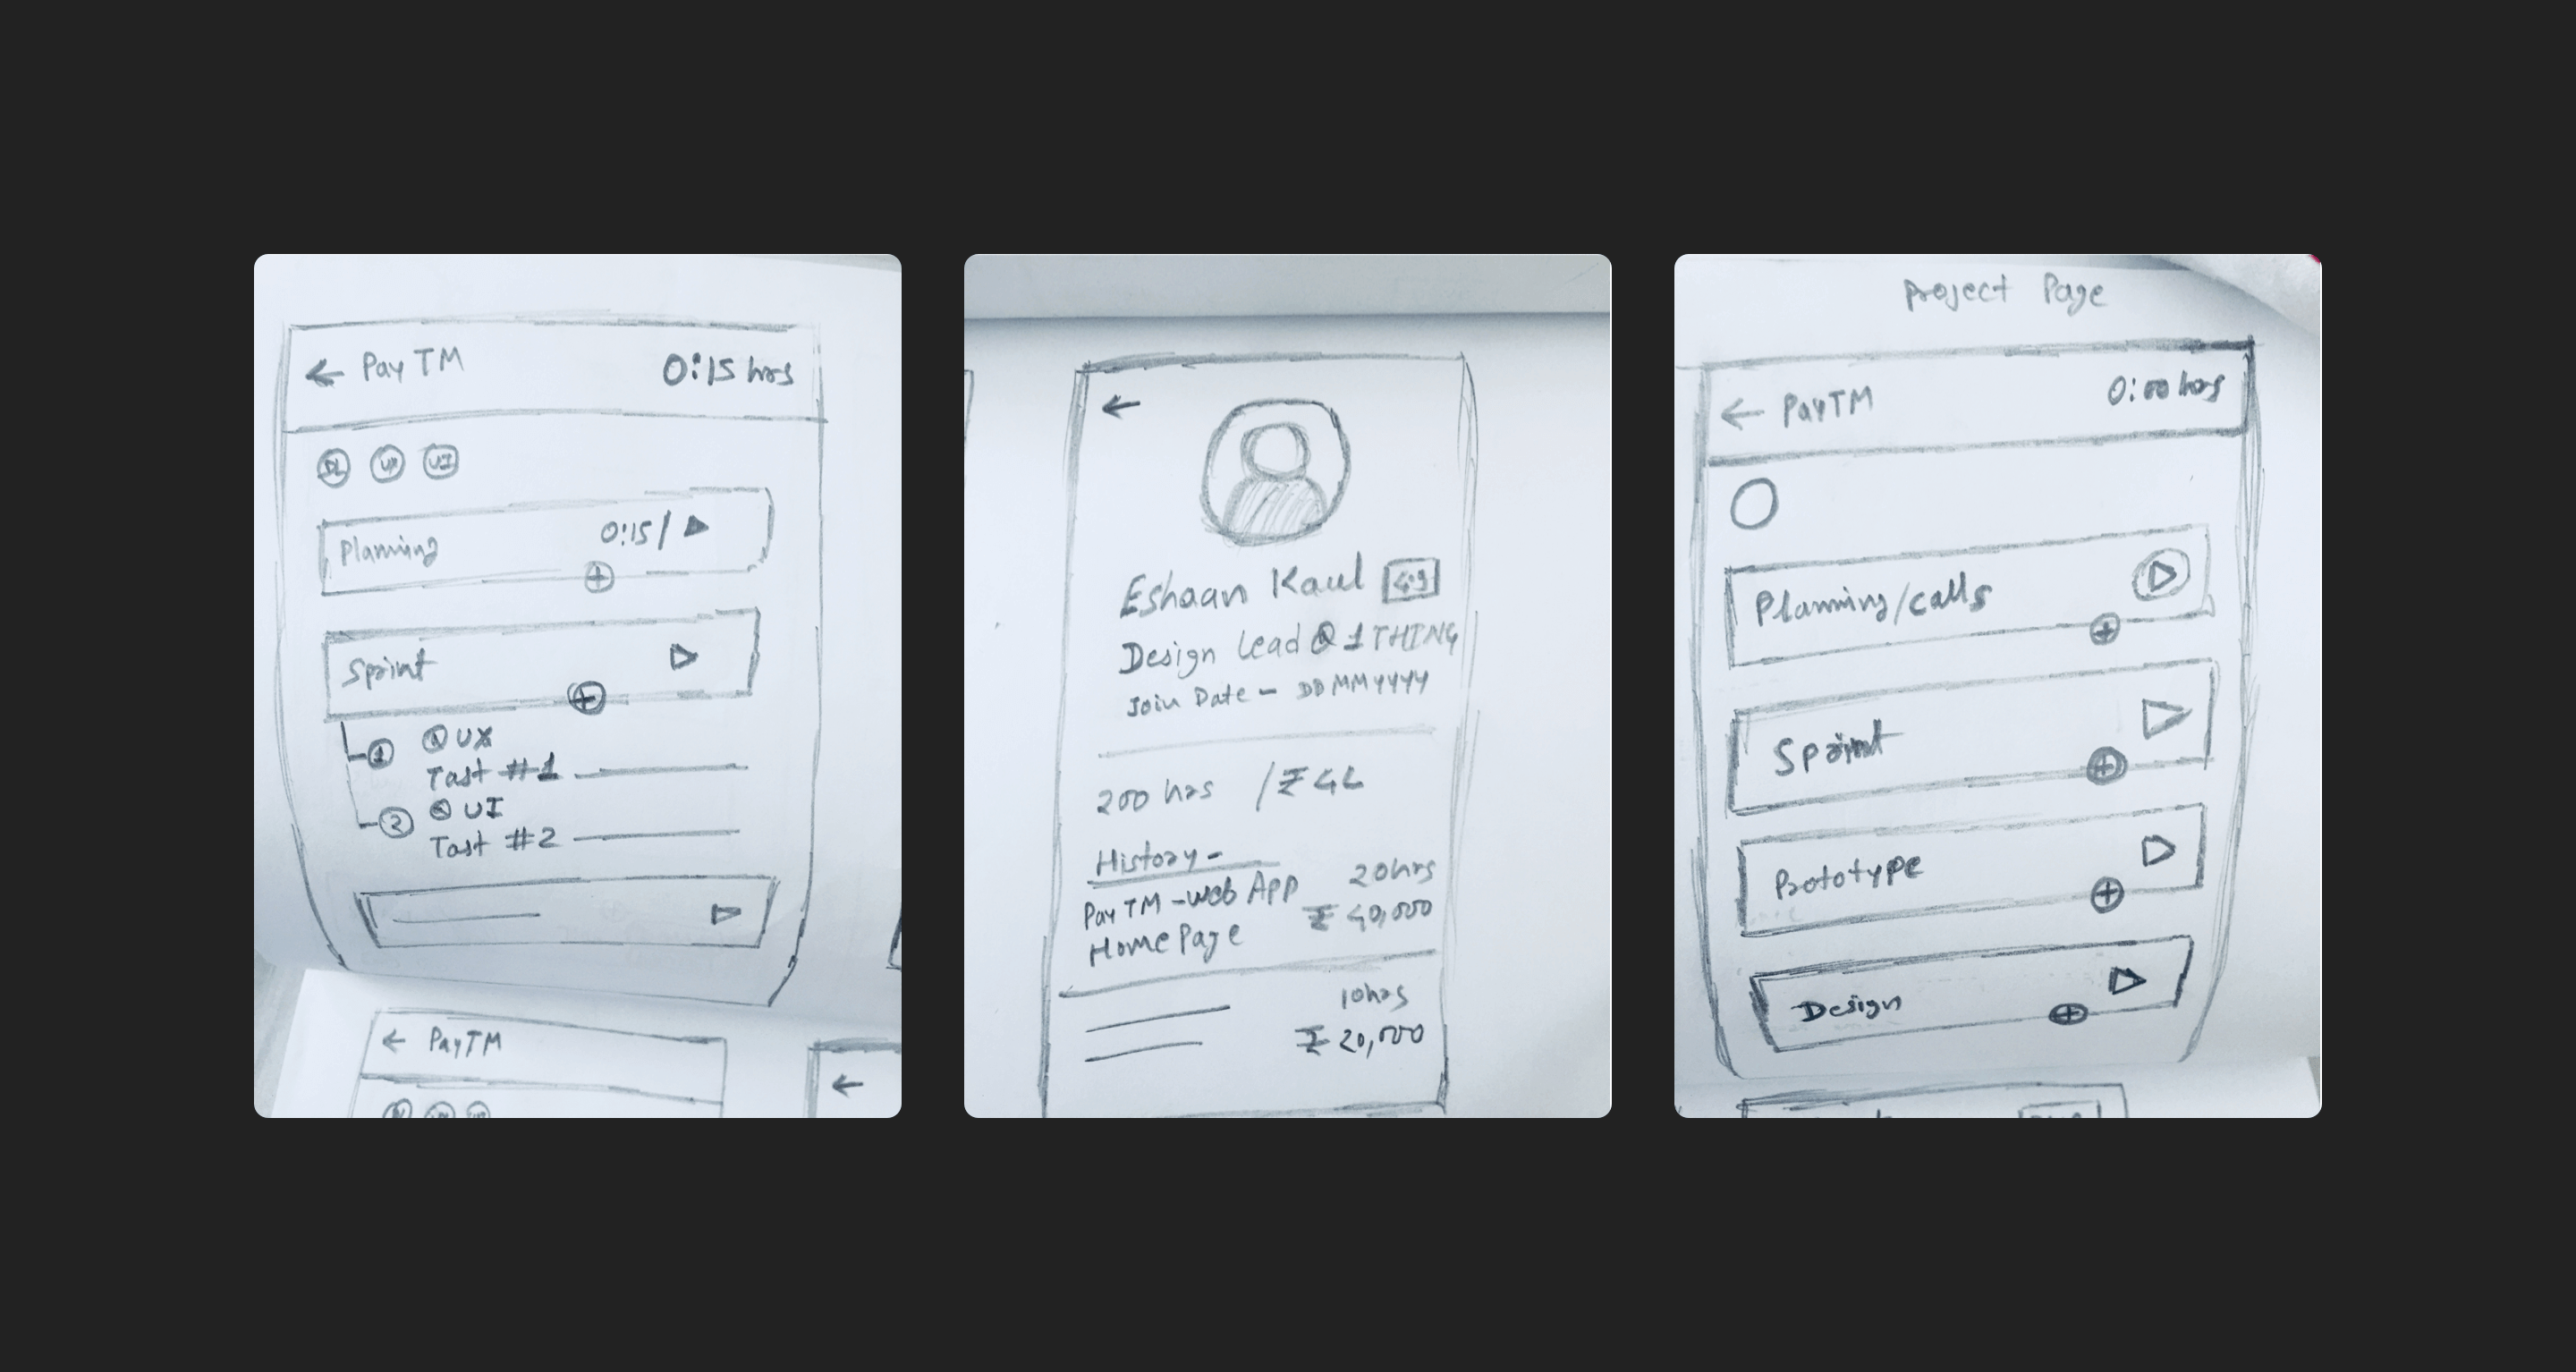 1THING is a freelancing website. 1THING makes it easier for the world's best businesses and independent professionals to find each other without the traditional barriers of set time and place. Wireframes